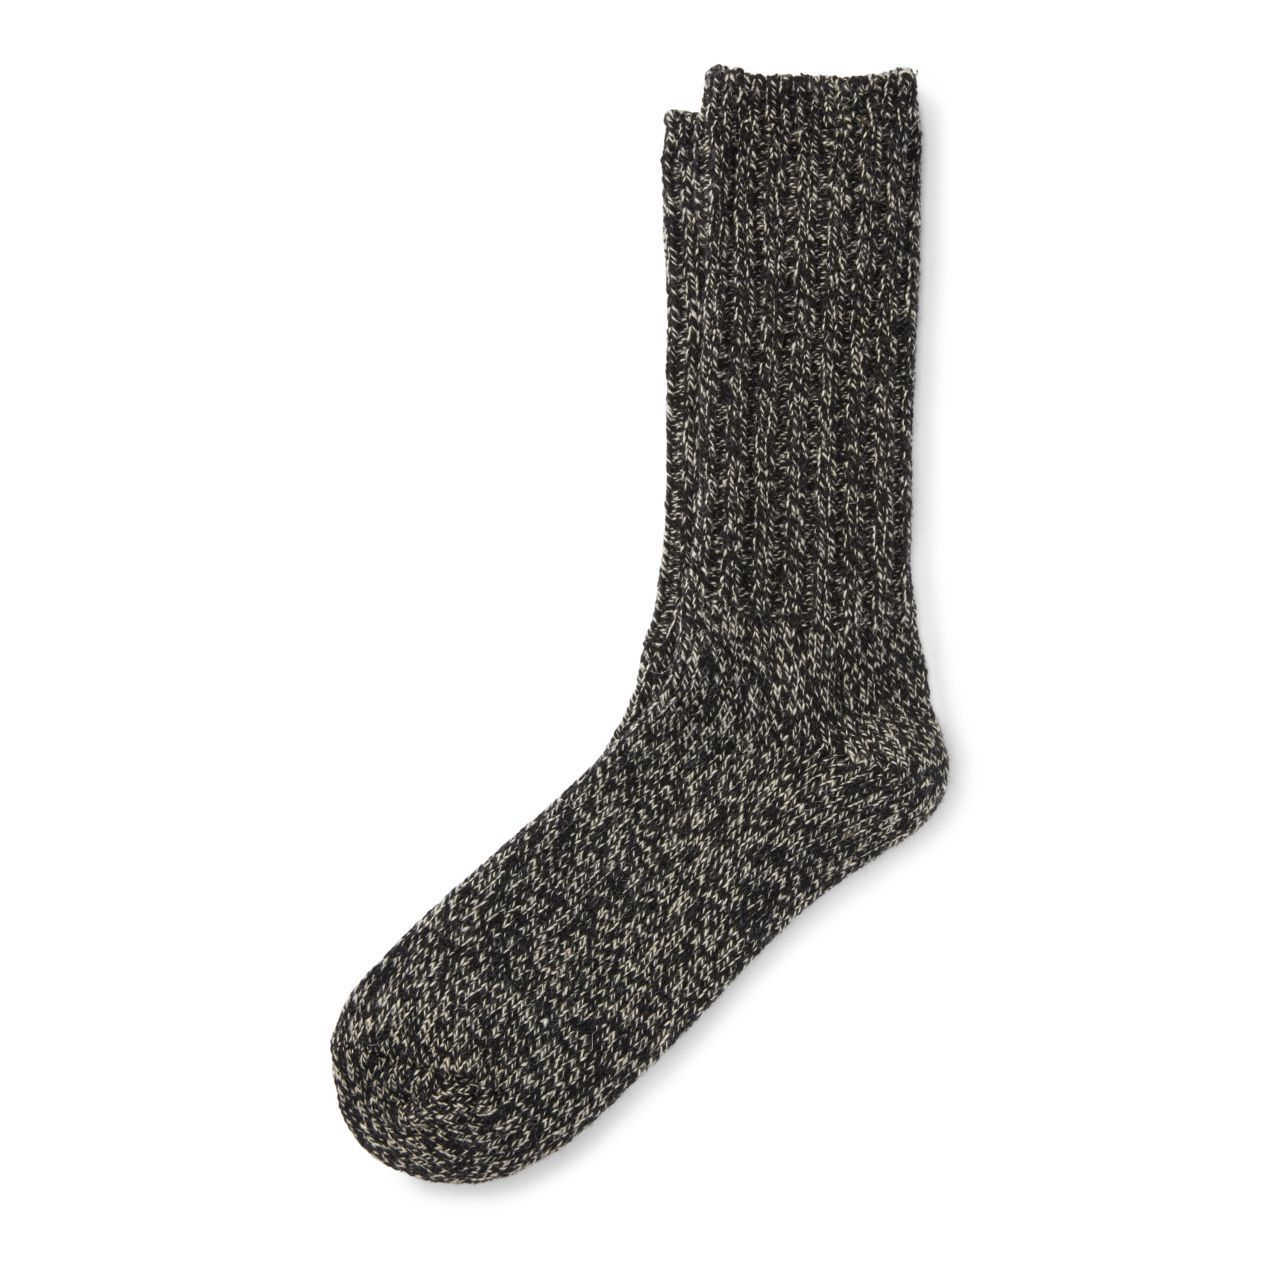 ◎送料込み◎Wool-Blend Hiking Socks